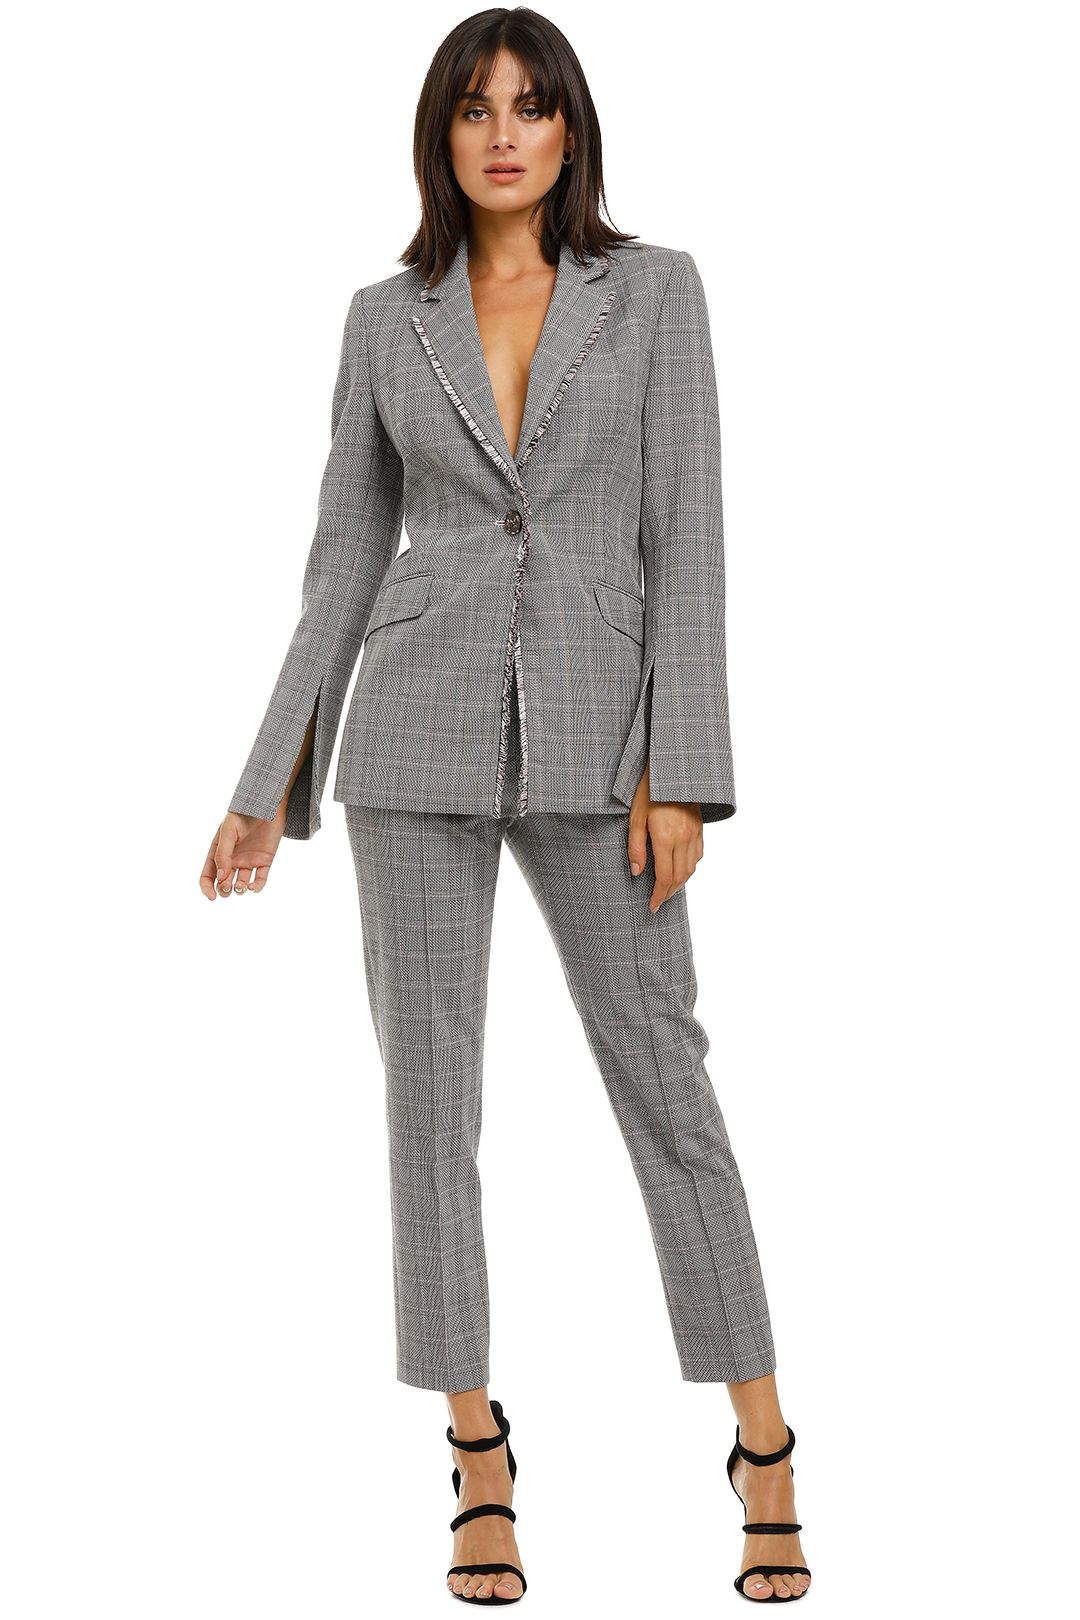 Rebecca-Vallance-Margot-Blazer-and-Slim-Pant-Set-Grey-Check-Front